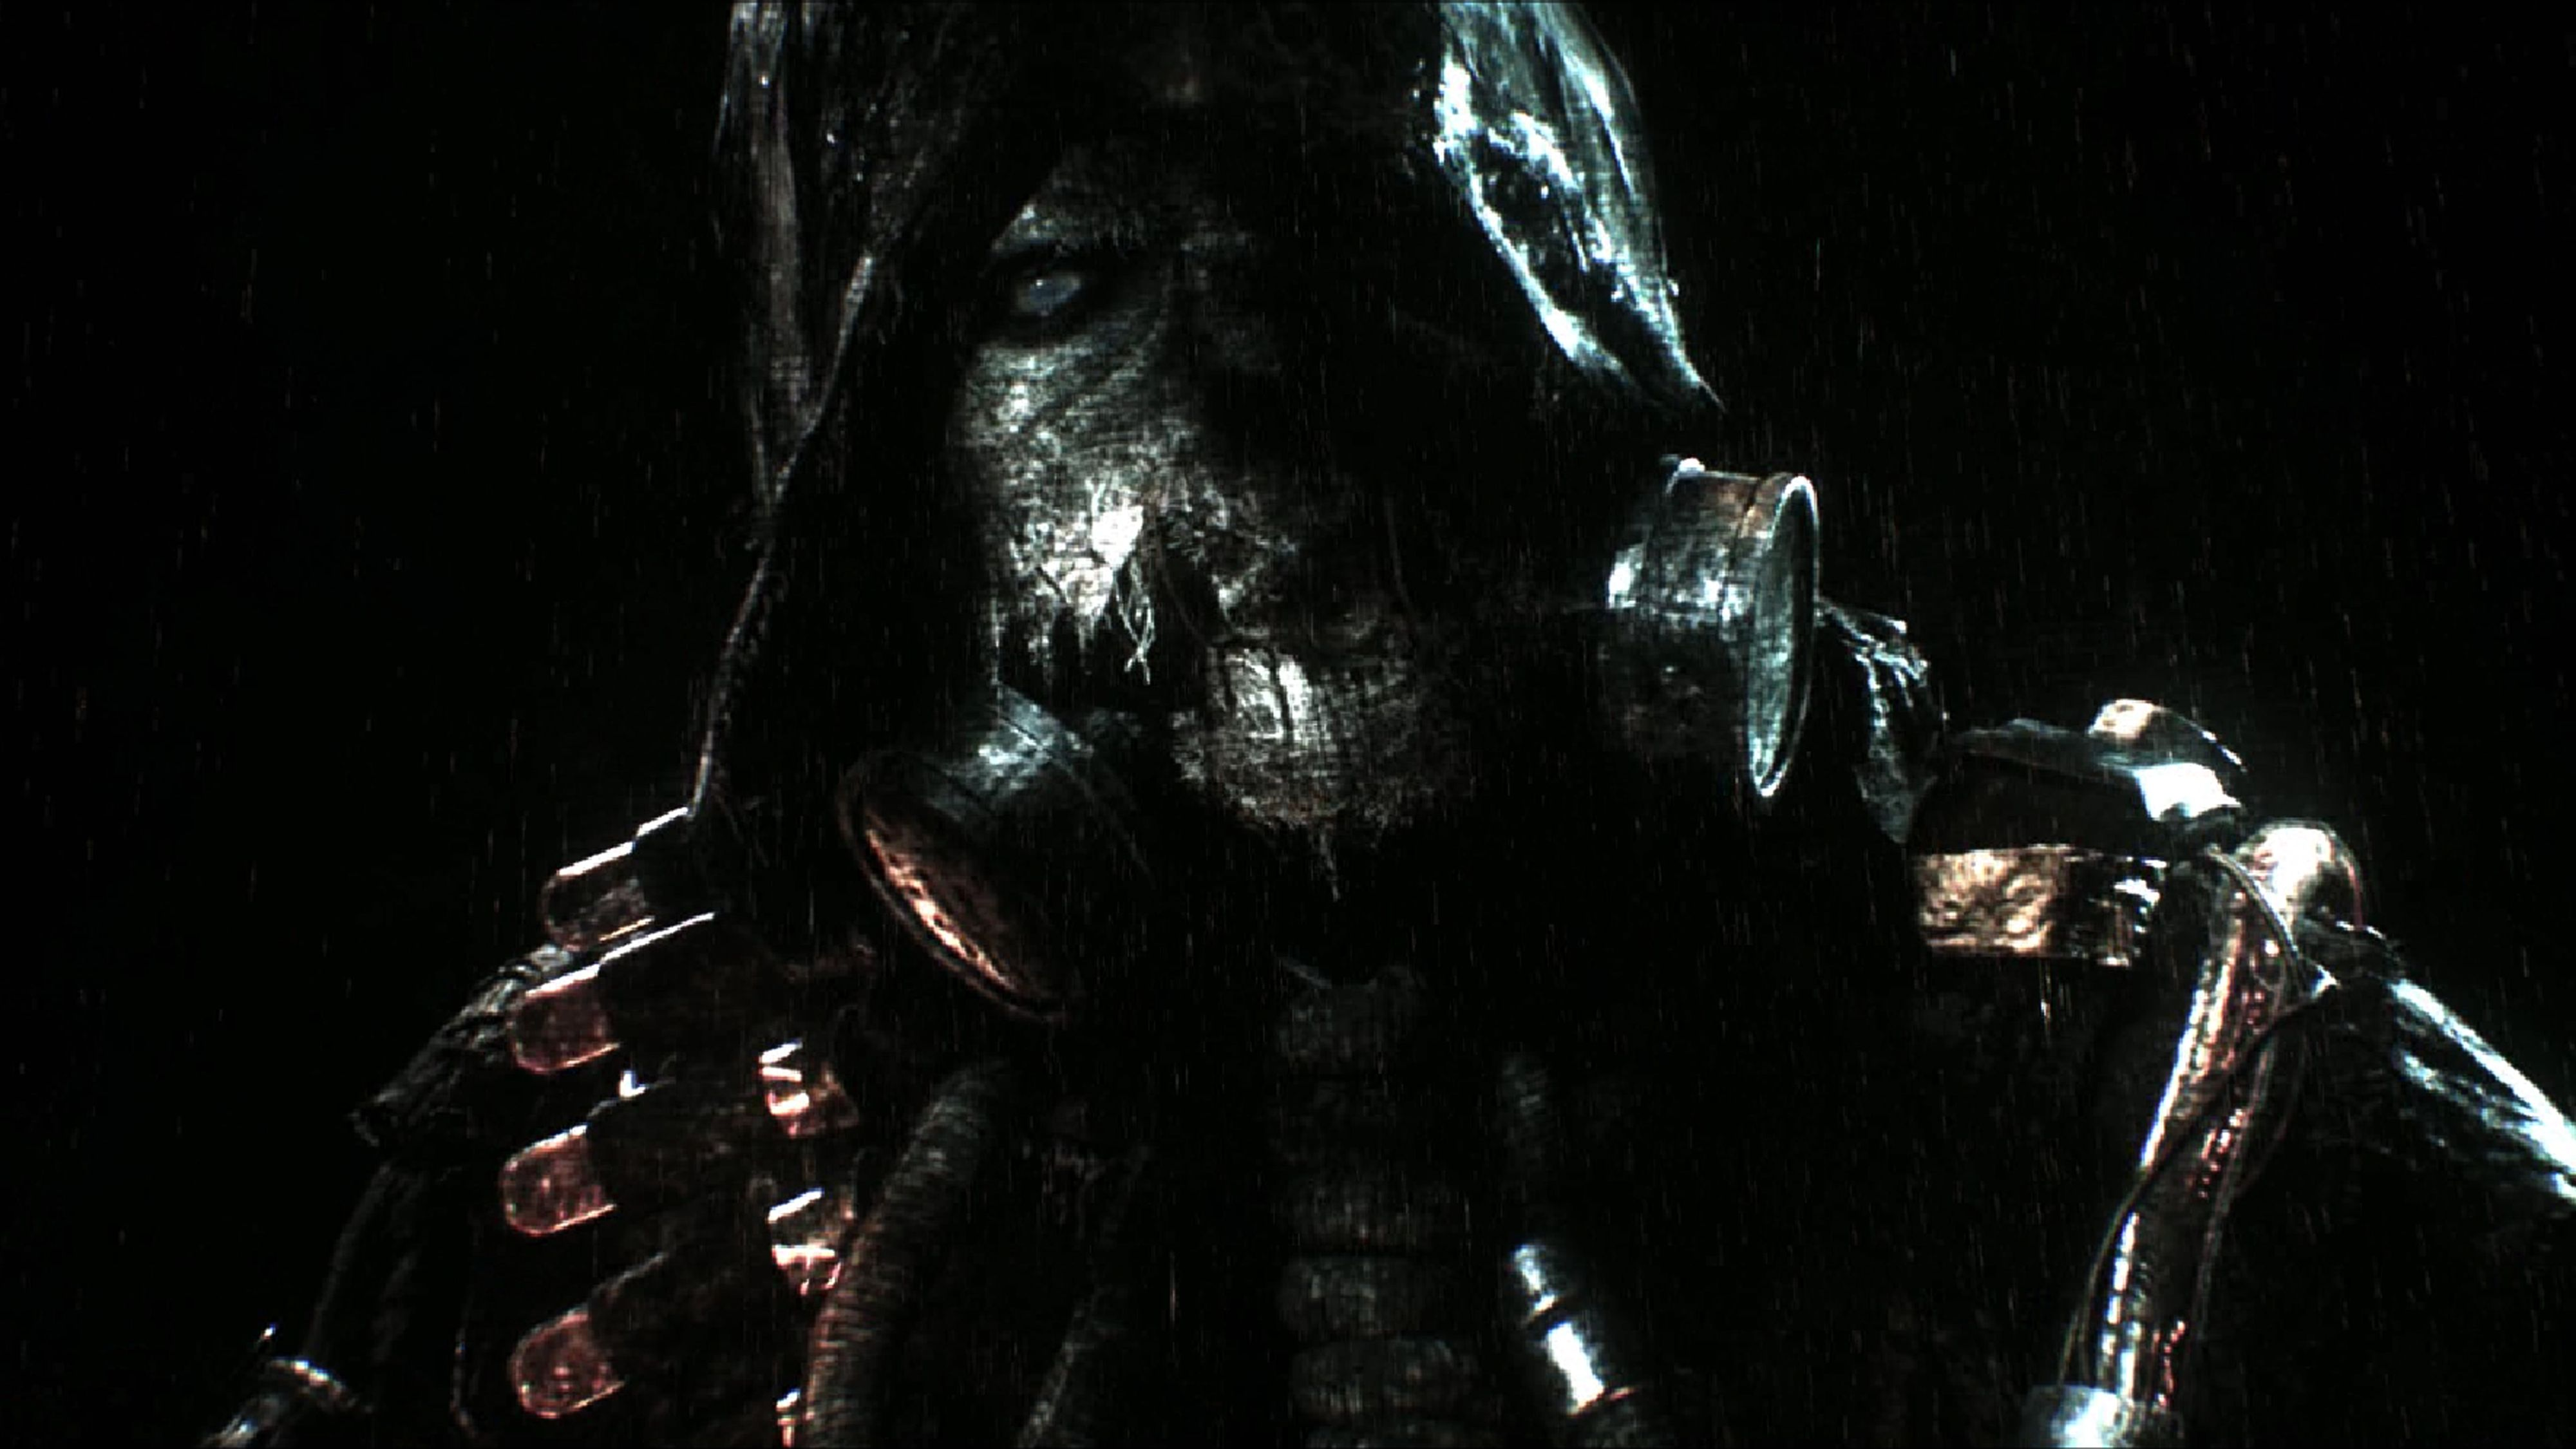 Batman: Arkham Knight, Scarecrow delivers his warning to Gotham.